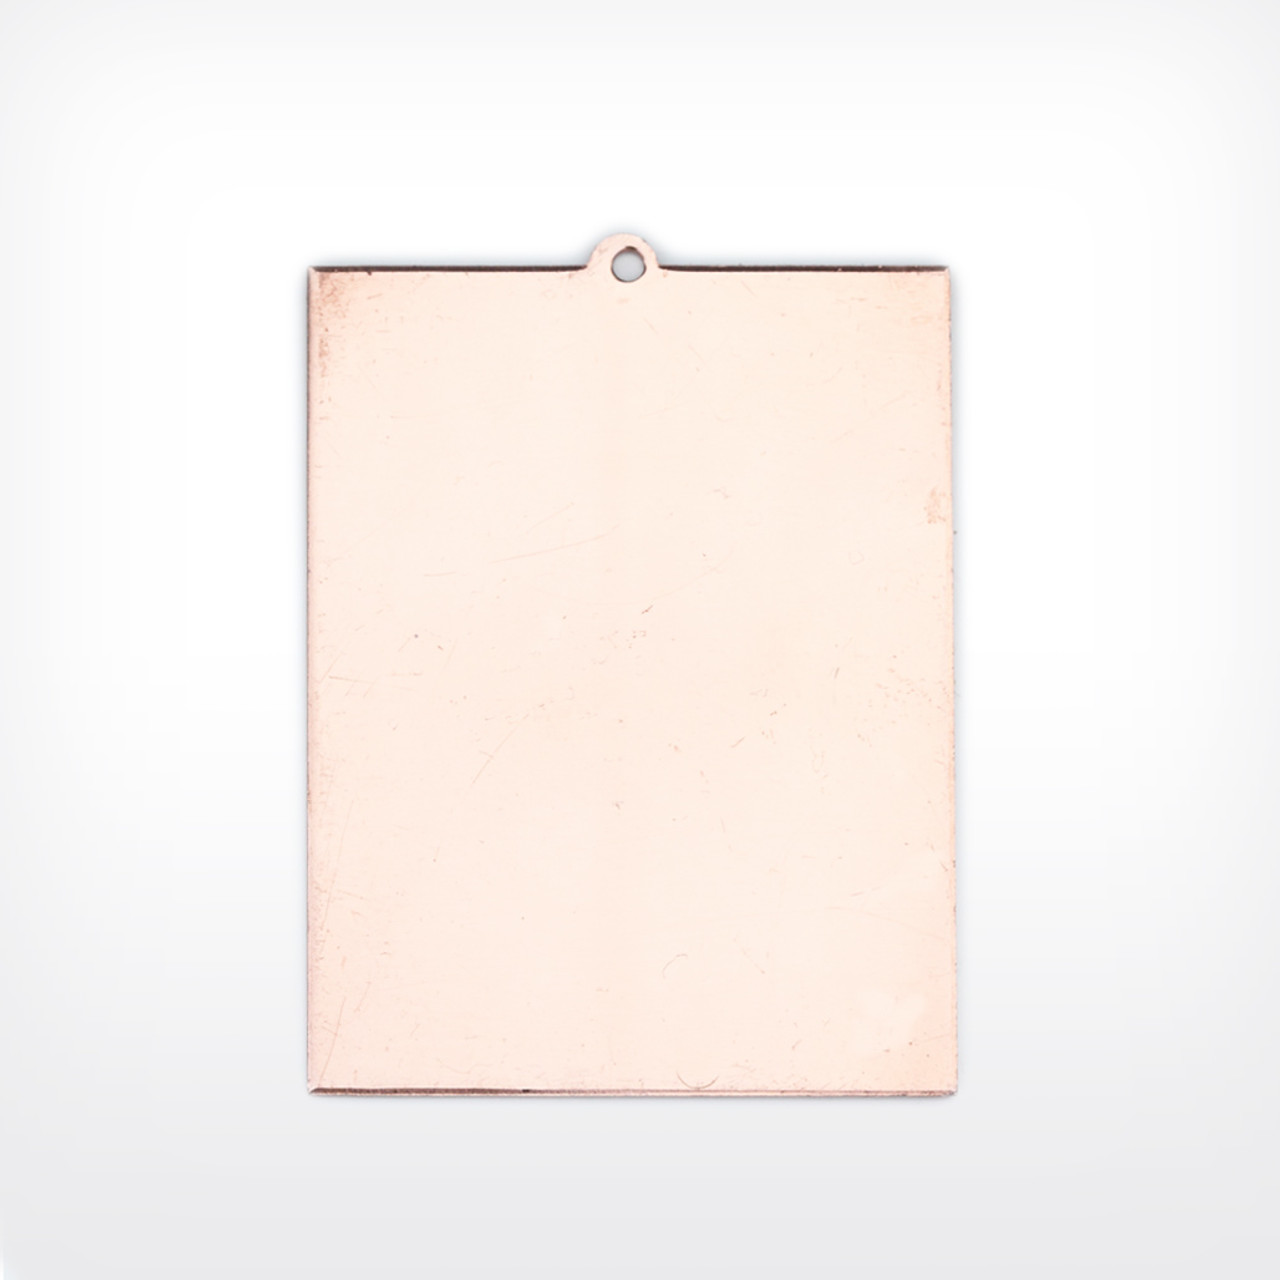 Copper Rectangle with lug, 50x40mm - Pack of 10 (519-CU-L) - END OF LINE 50% OFF